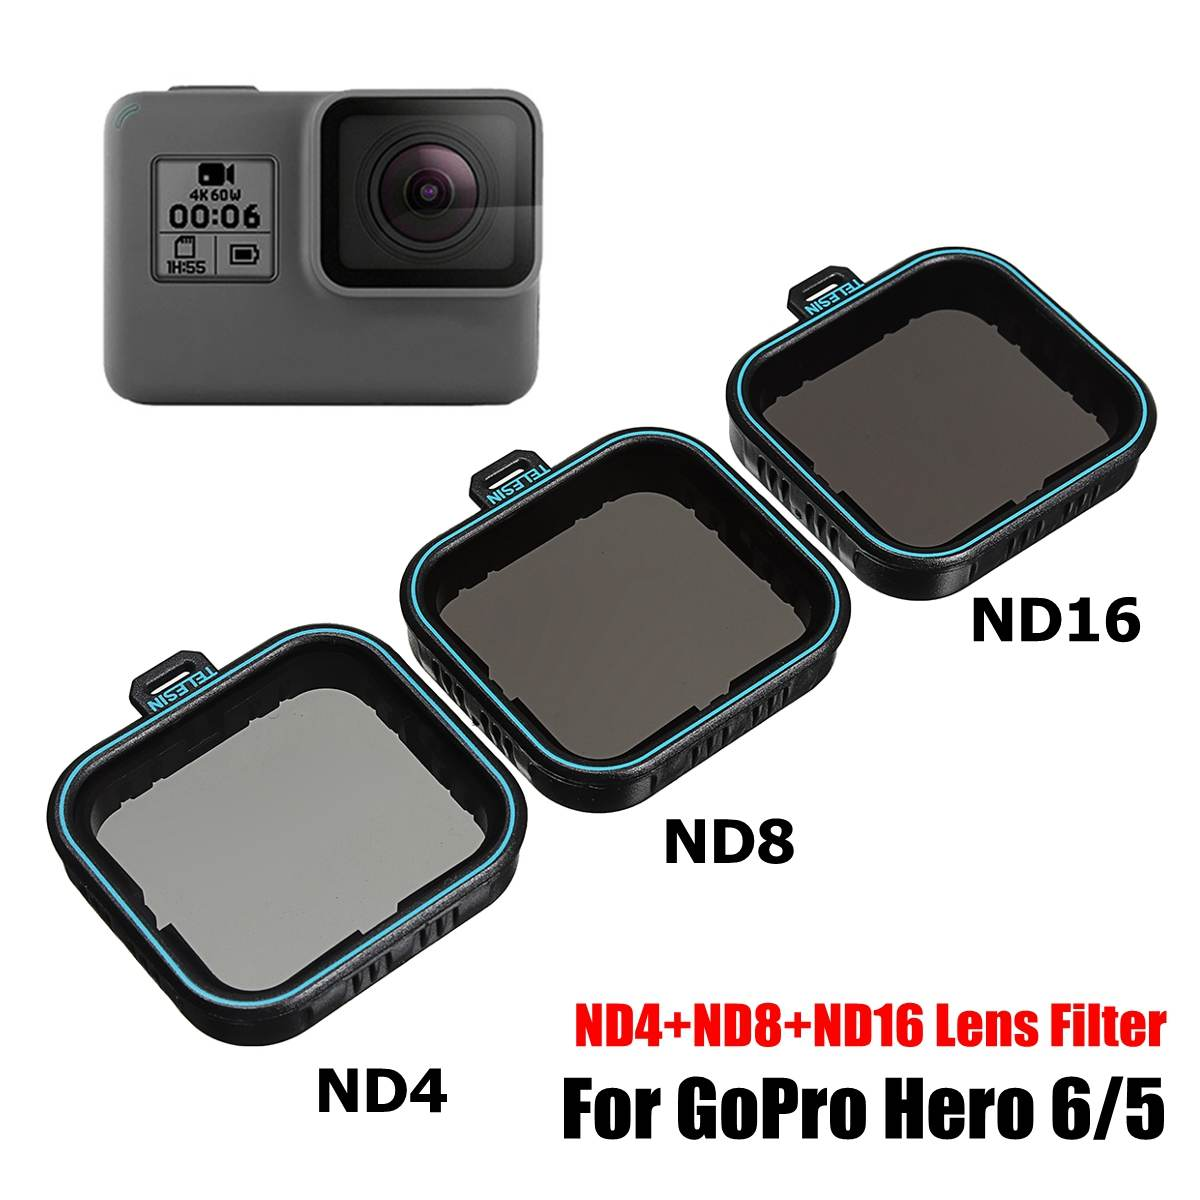 ND16 Neewer Camera Lens Filter 4-Pack for DJI Mavic Drone ND8 Multi-coated MC-16 HD ND4 ND32 with 3-IN-1 Cleaning Kit